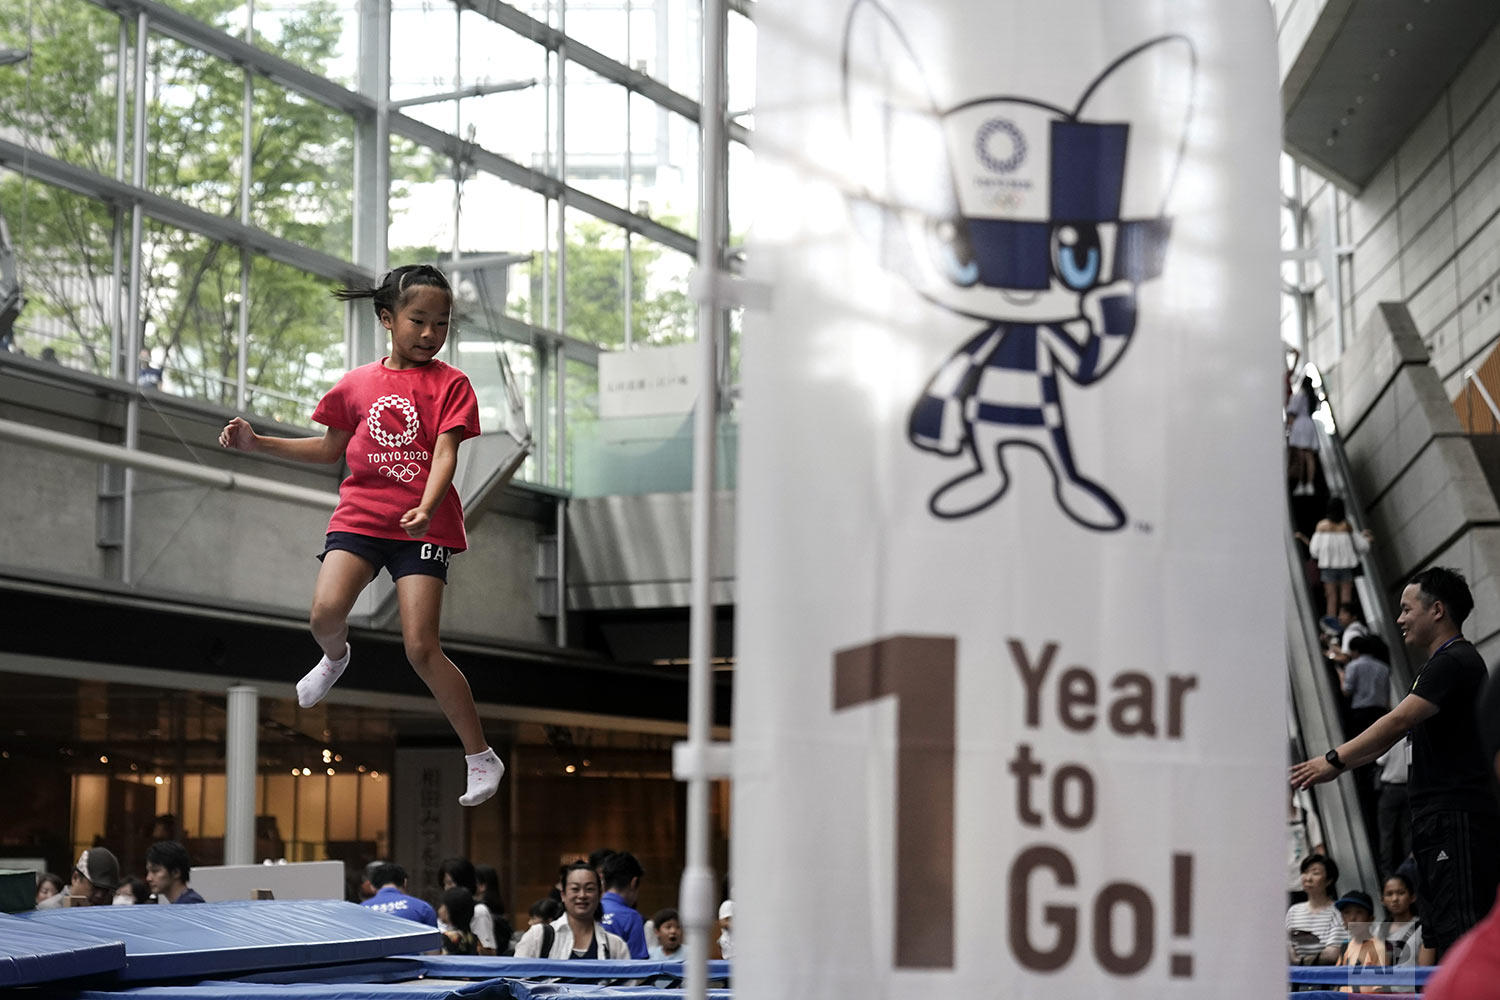 A girl plays on a trampoline during a One Year to Go ceremony held at Tokyo International Forum to mark one year until the opening of the Tokyo 2020 Olympics, in Tokyo, July 24, 2019, photo. (AP Photo/Jae C. Hong)